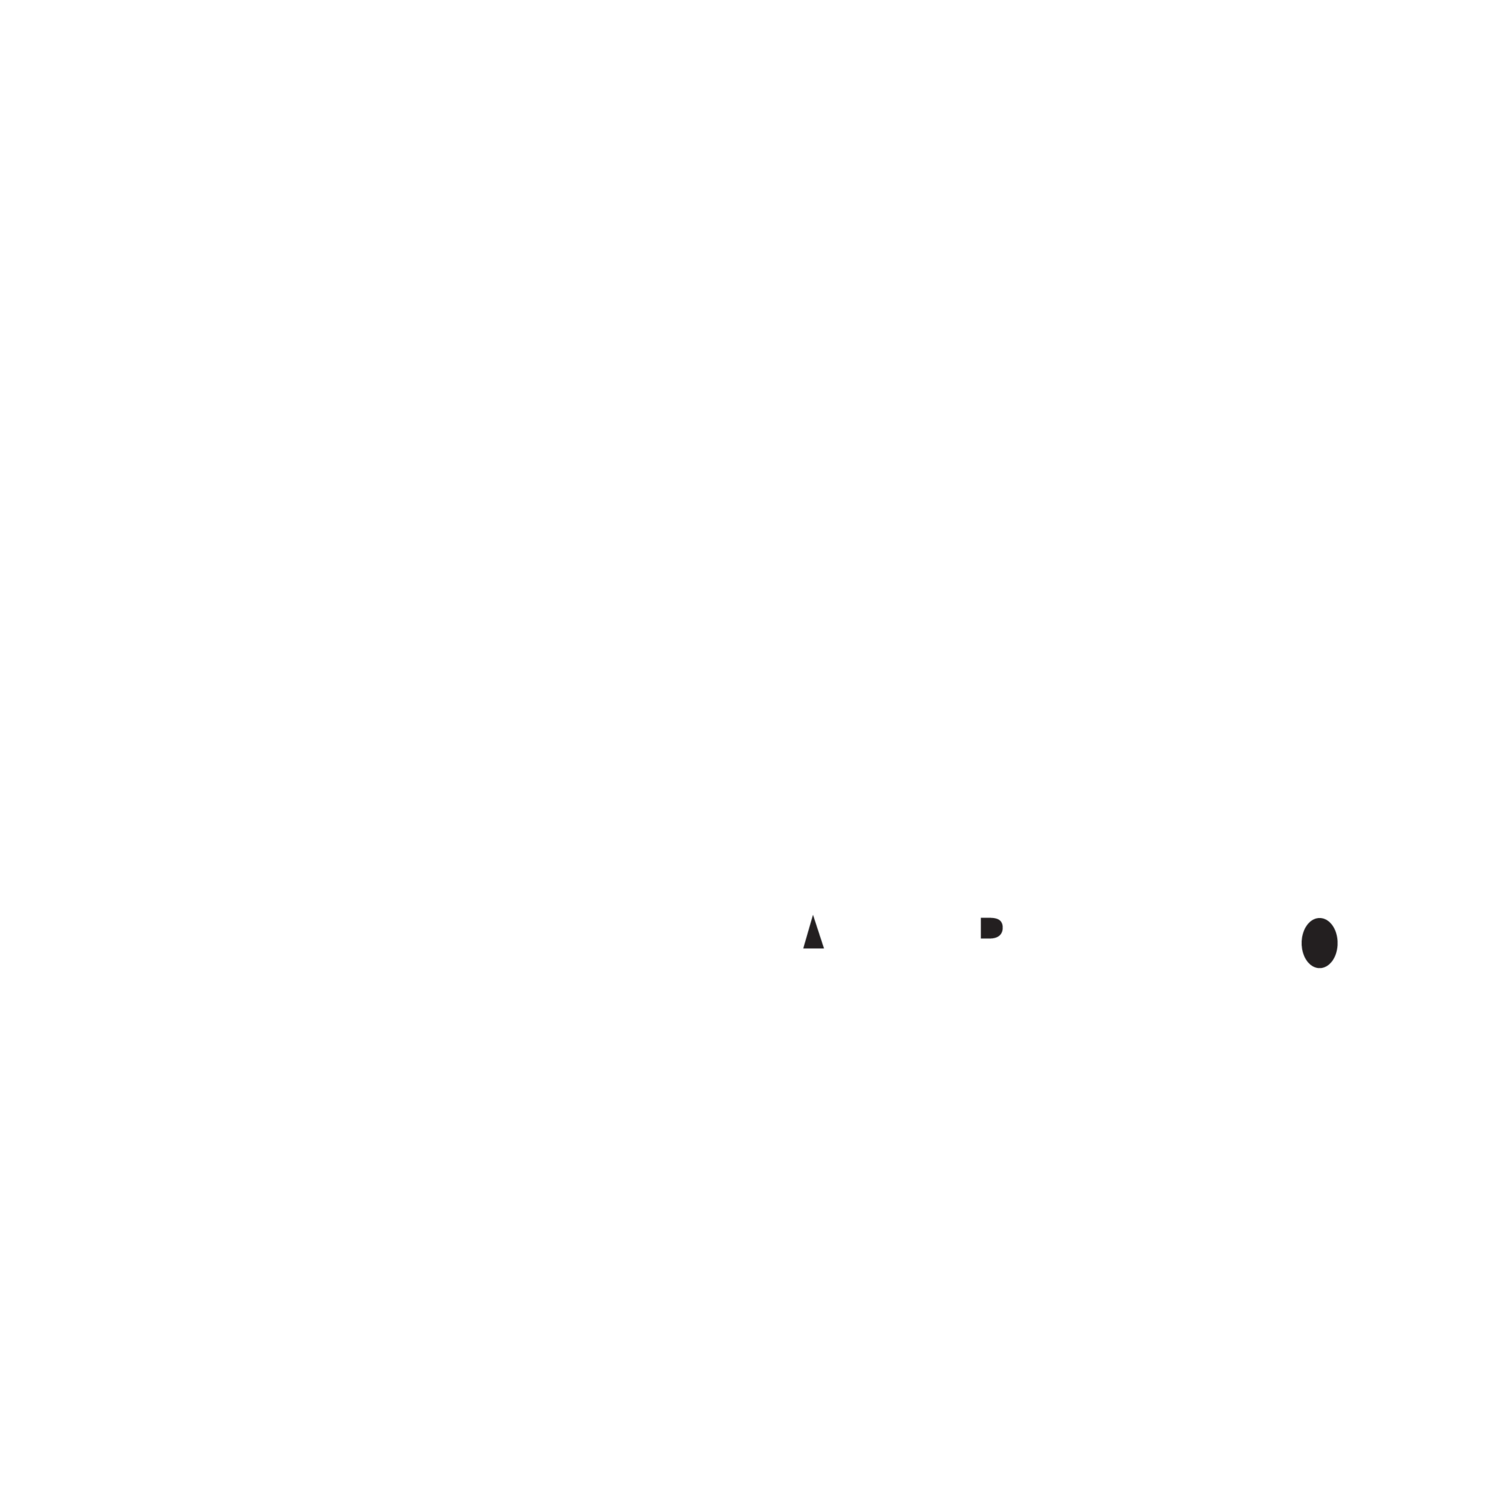 villa theater co.